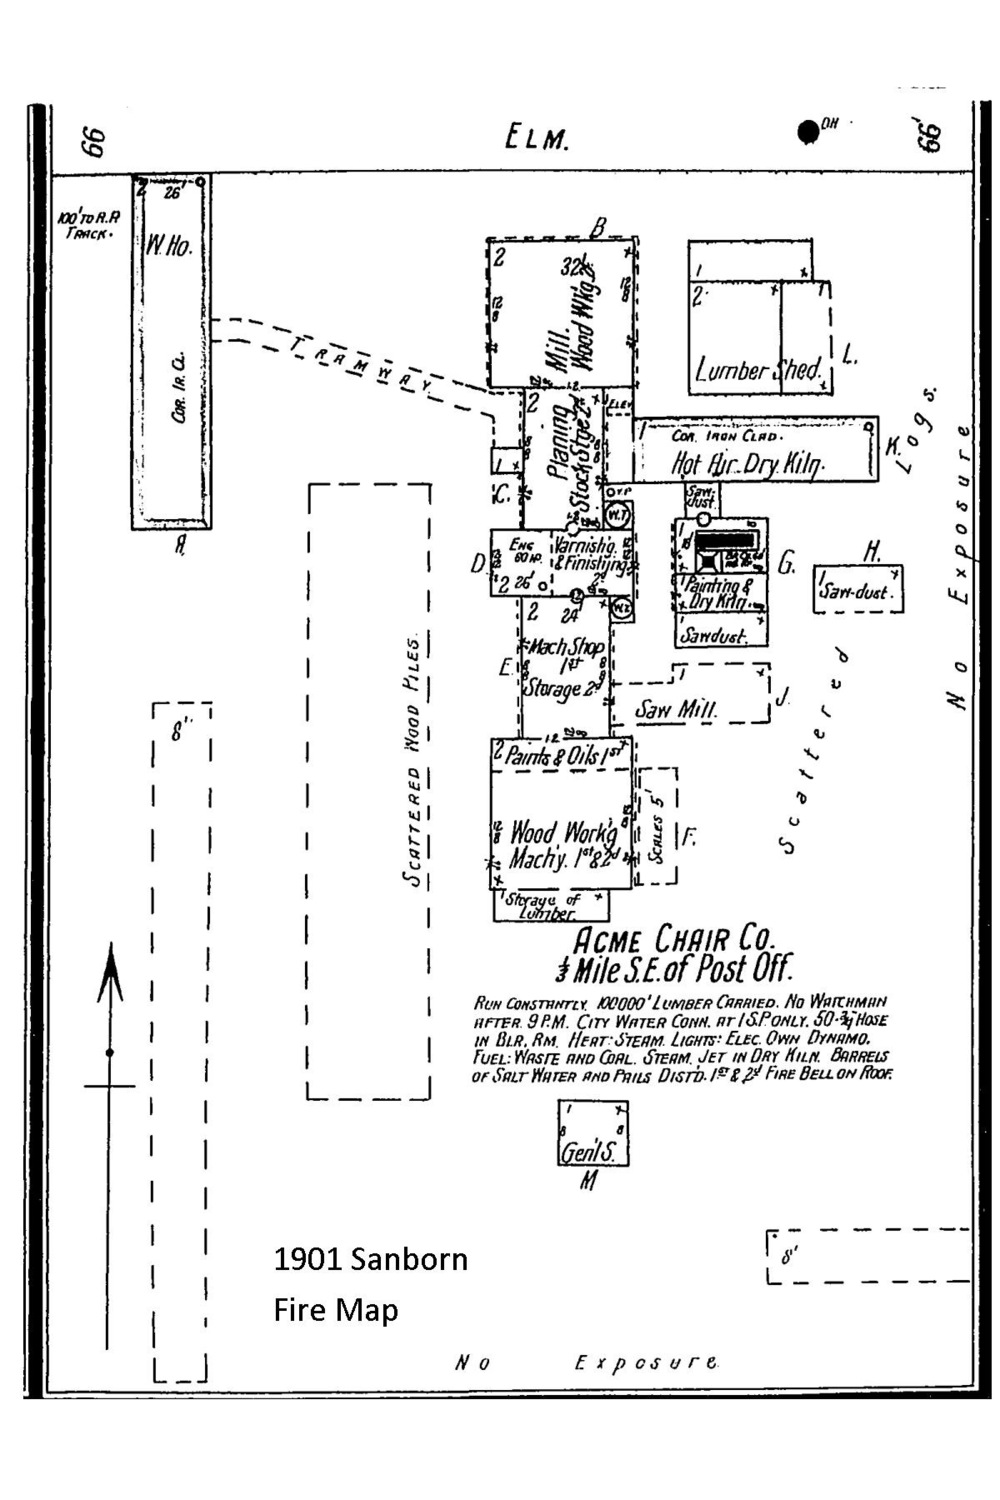 The layout of the Acme Chair Company as shown in the Sanborn fire map